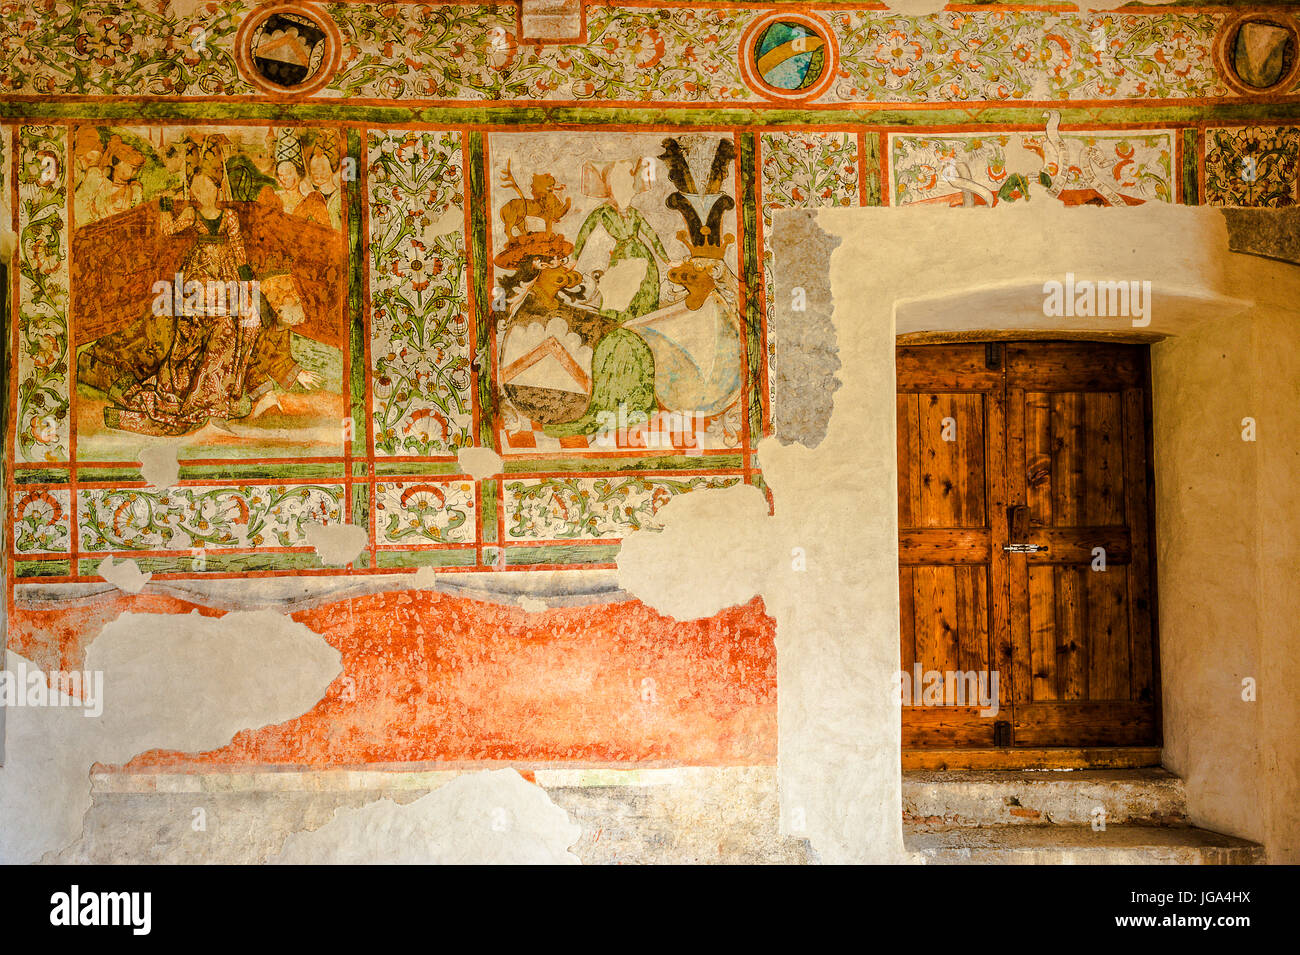 Italy Trentino Calliano Castel Pietra - room of the Judment -A fresco depicting Aristotle ridden by Filide - Stock Image